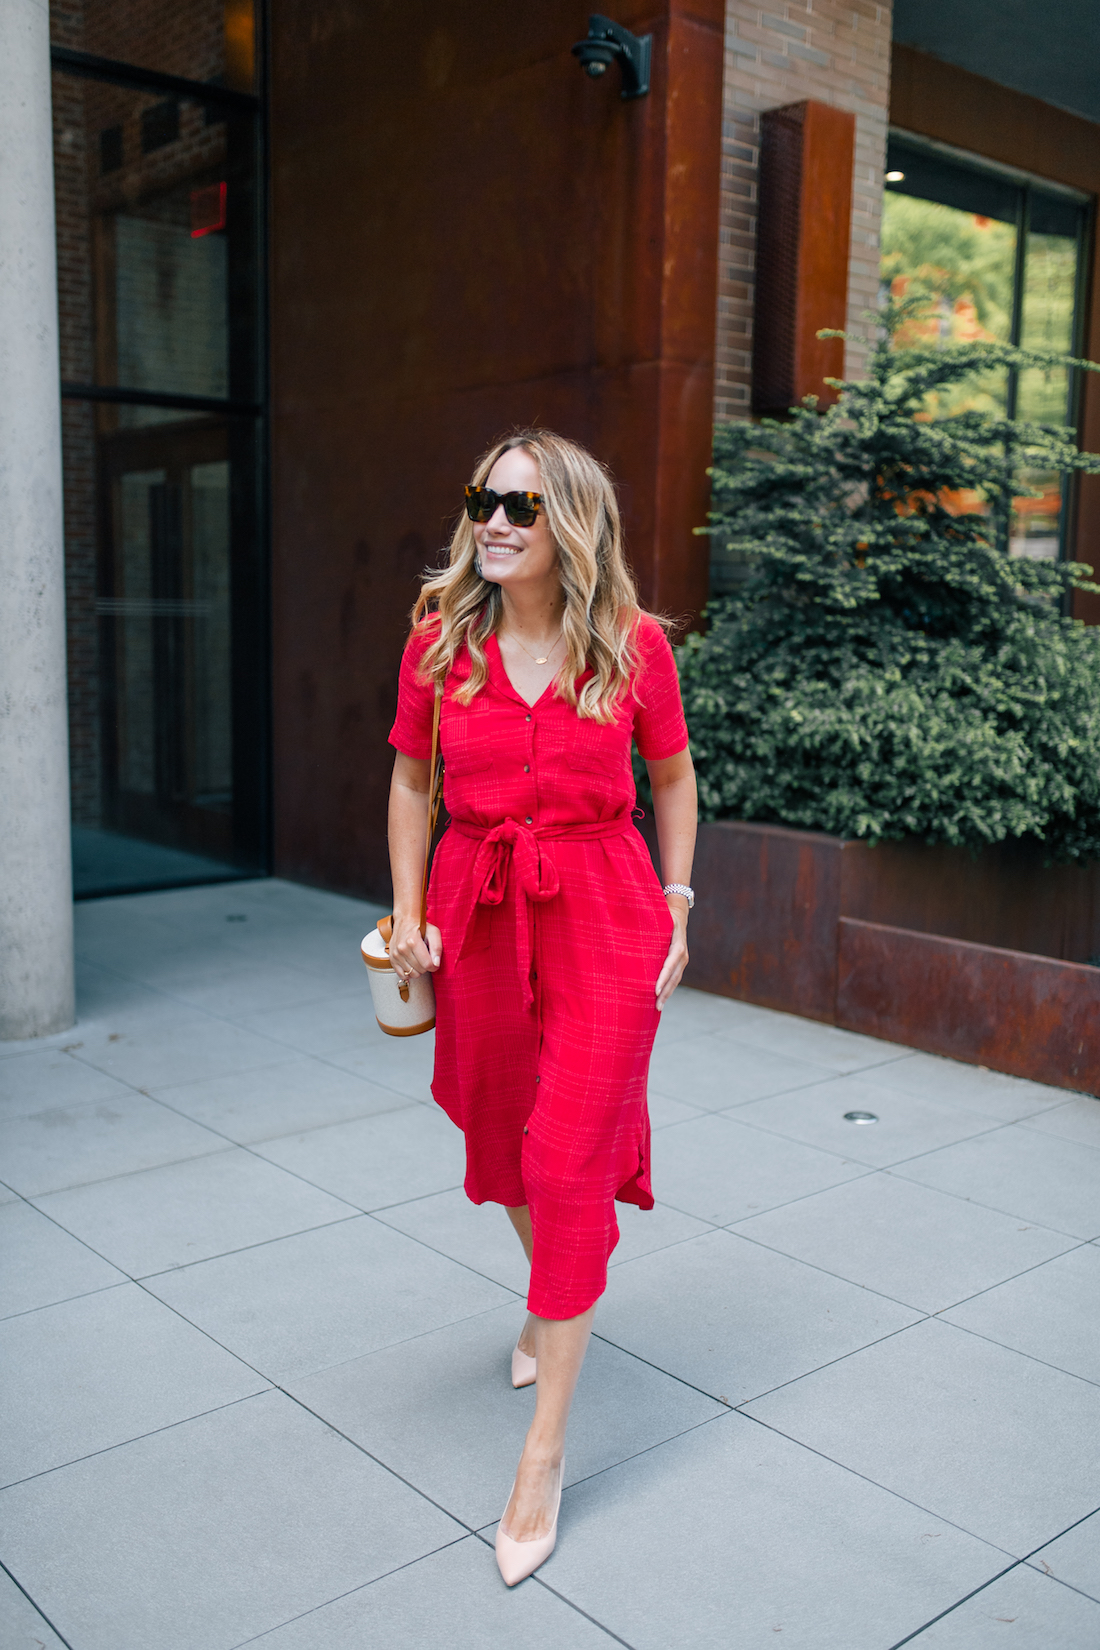 The Best Red Dresses For Spring by Grace Atwood